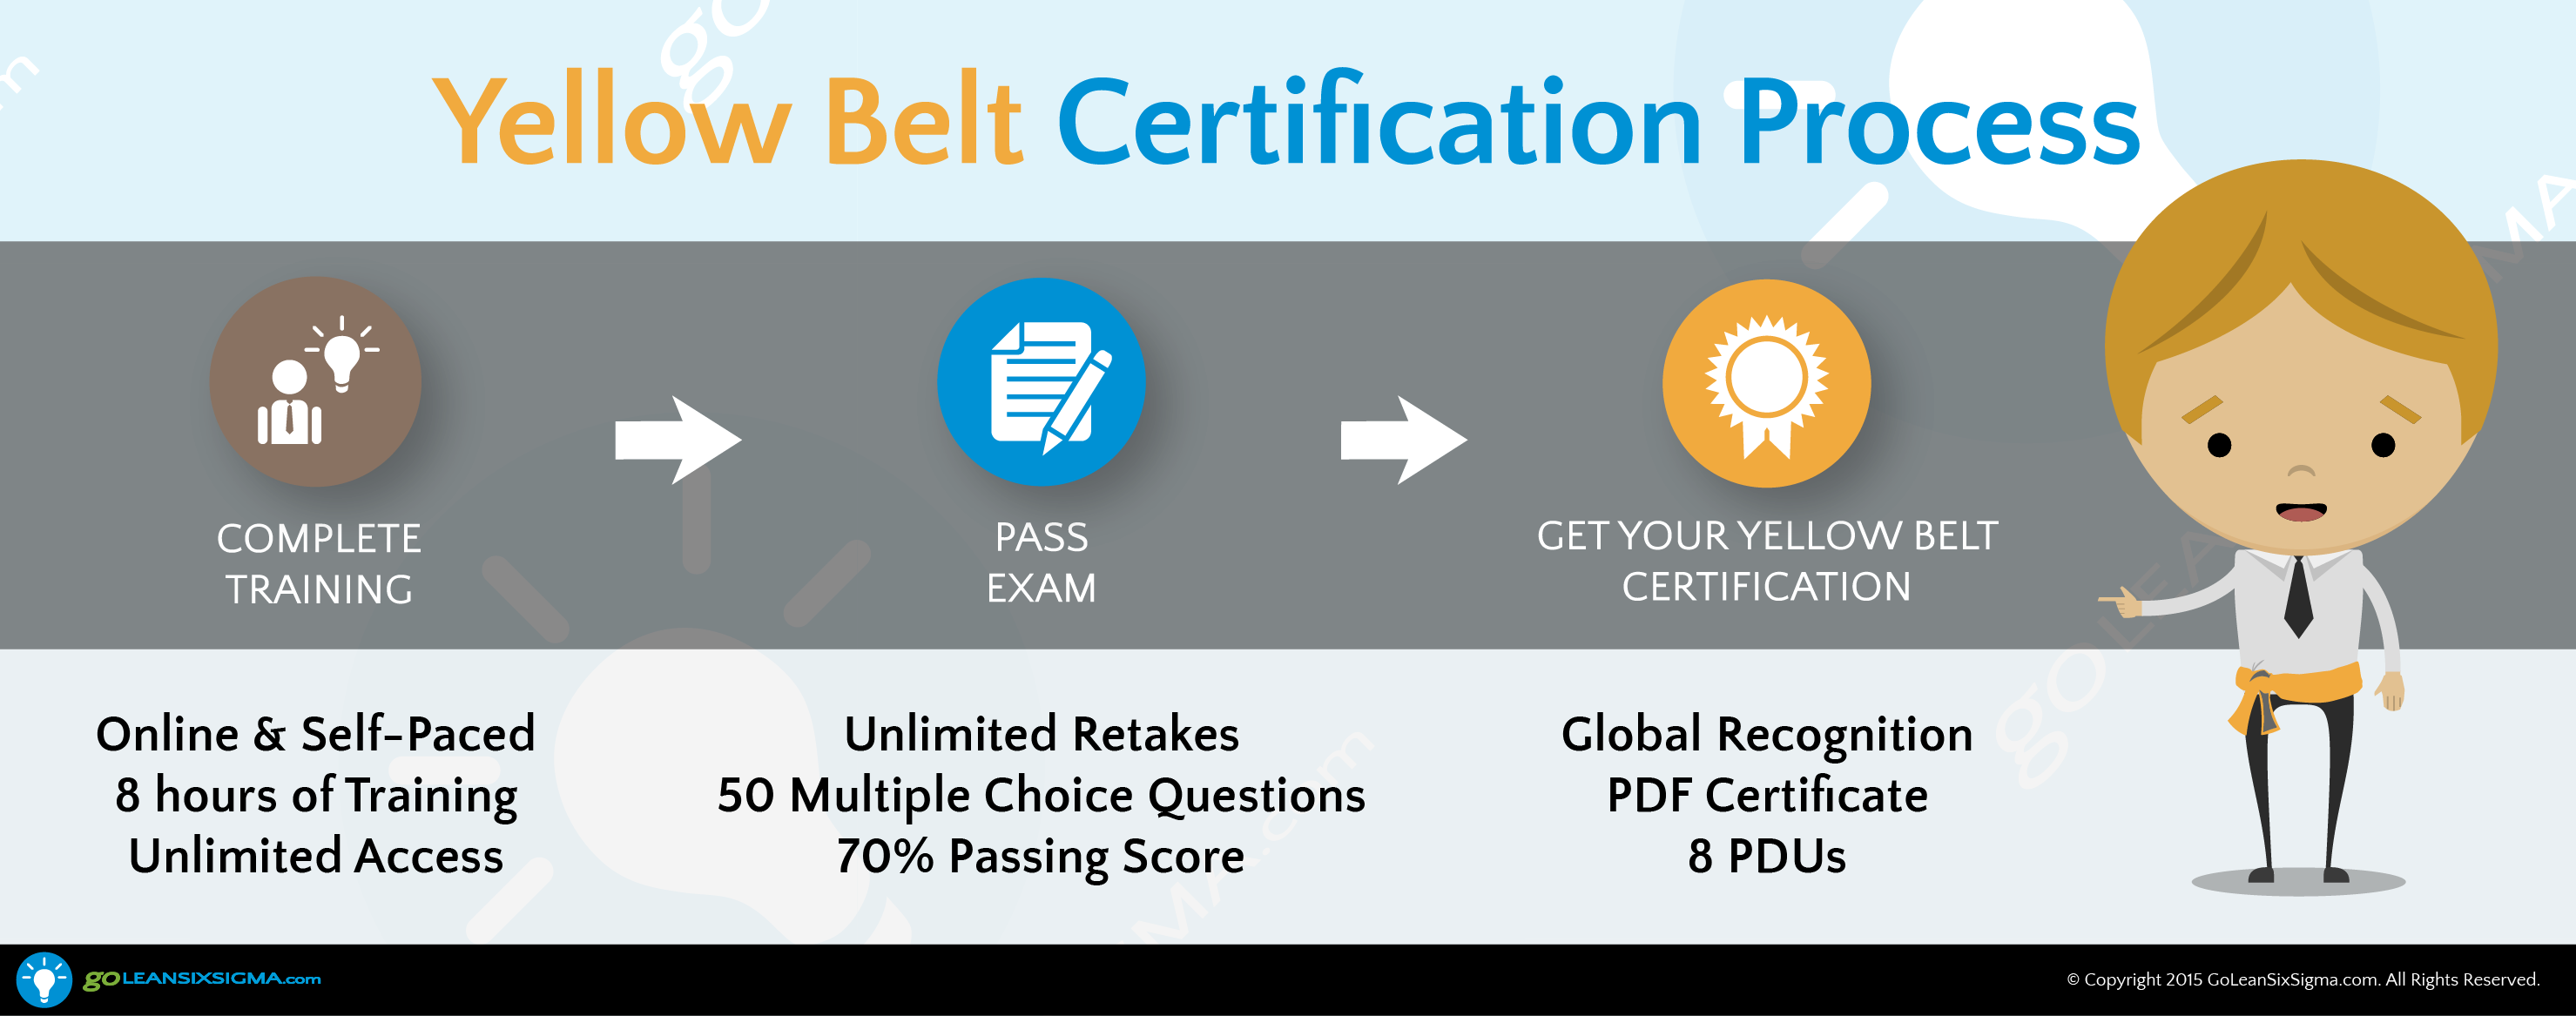 GLSS_CertificationProcess_Yellow_belt_cert